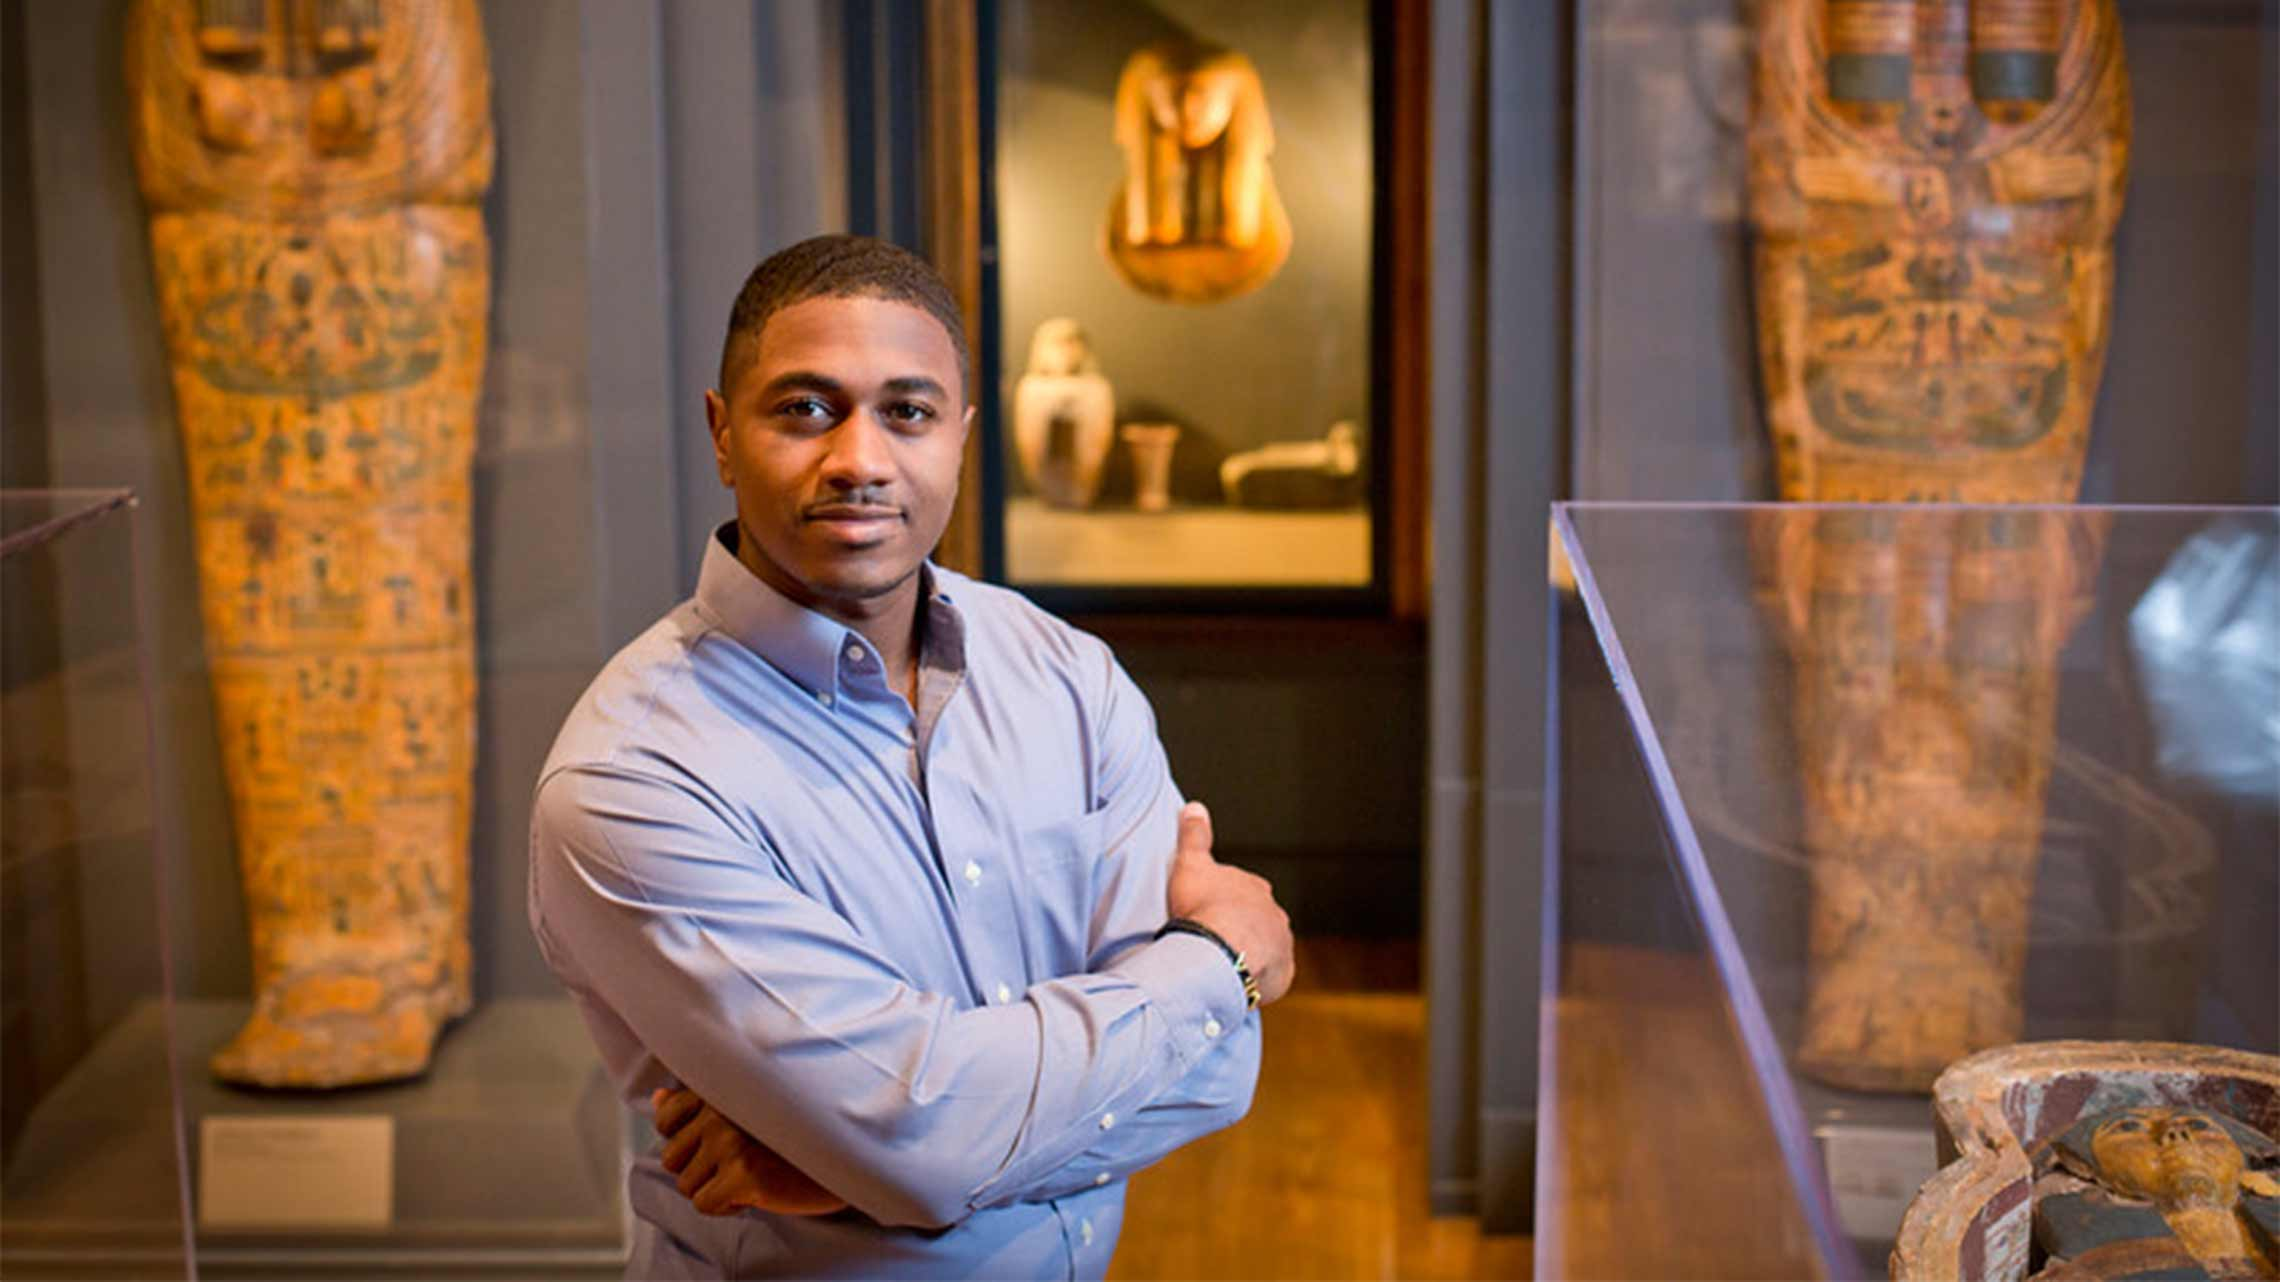 African American male poses in the Art Museum between two exhibits.